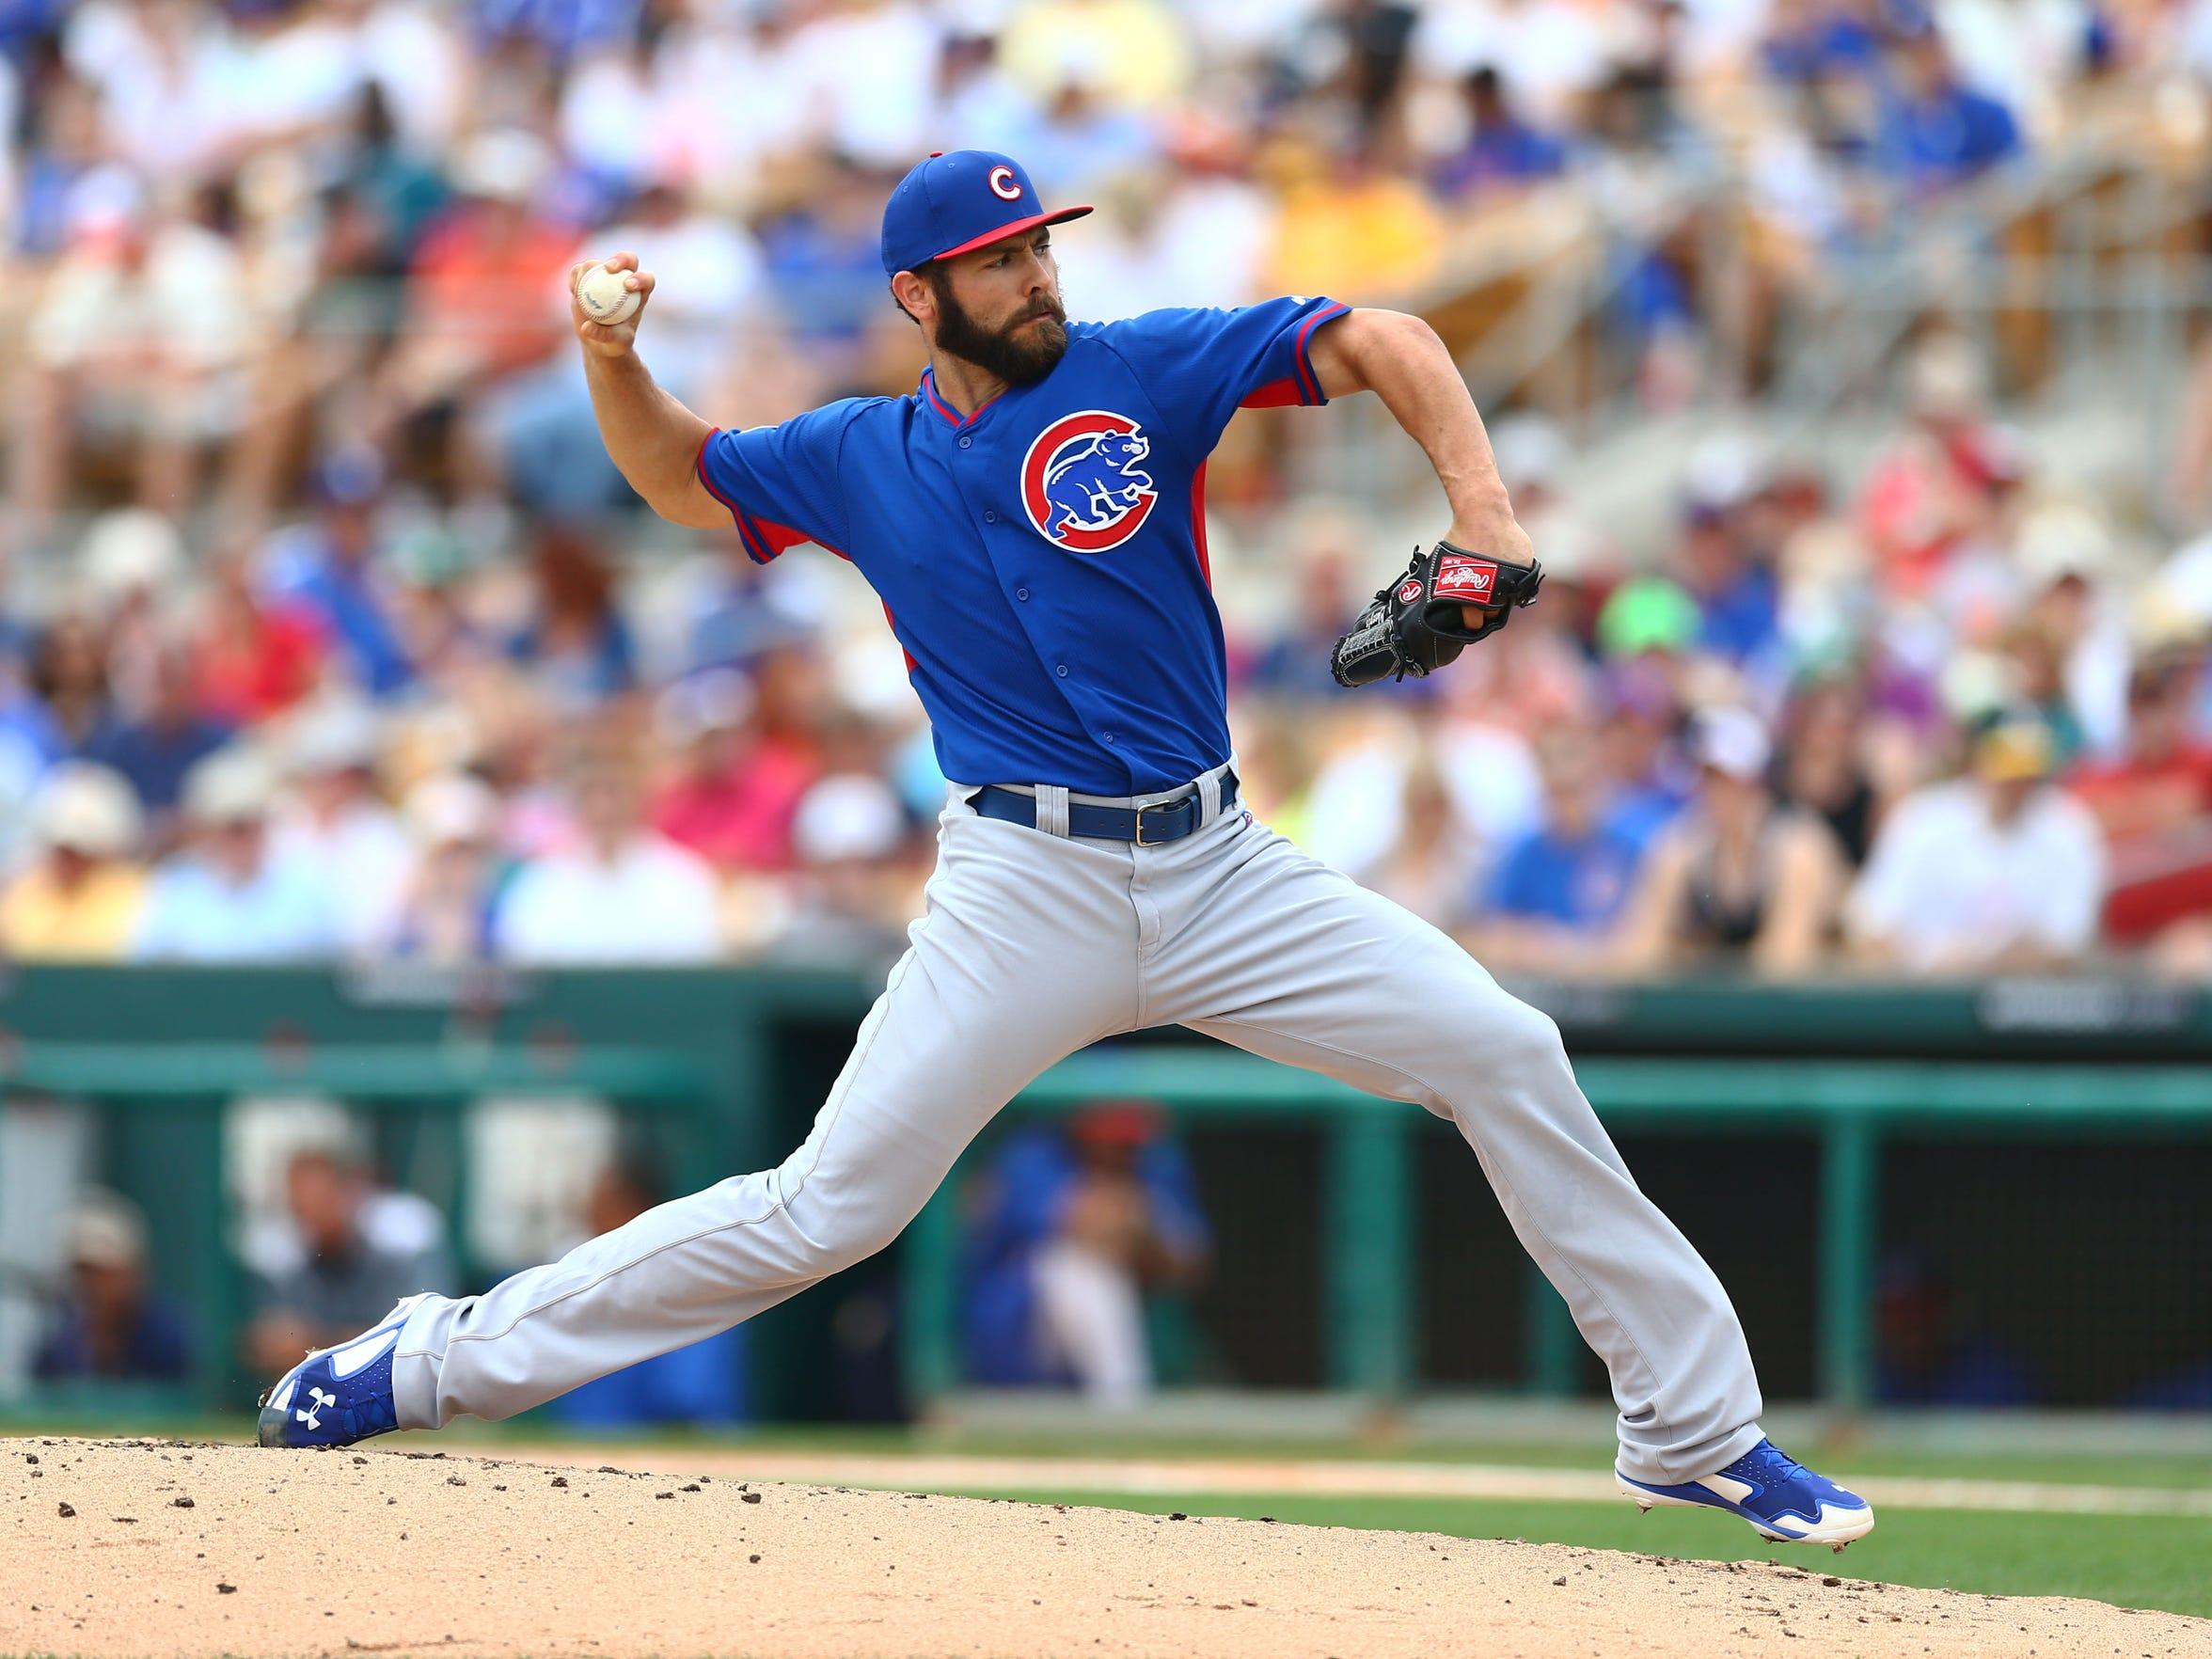 Chicago Cubs pitcher Jake Arrieta flipped a switch